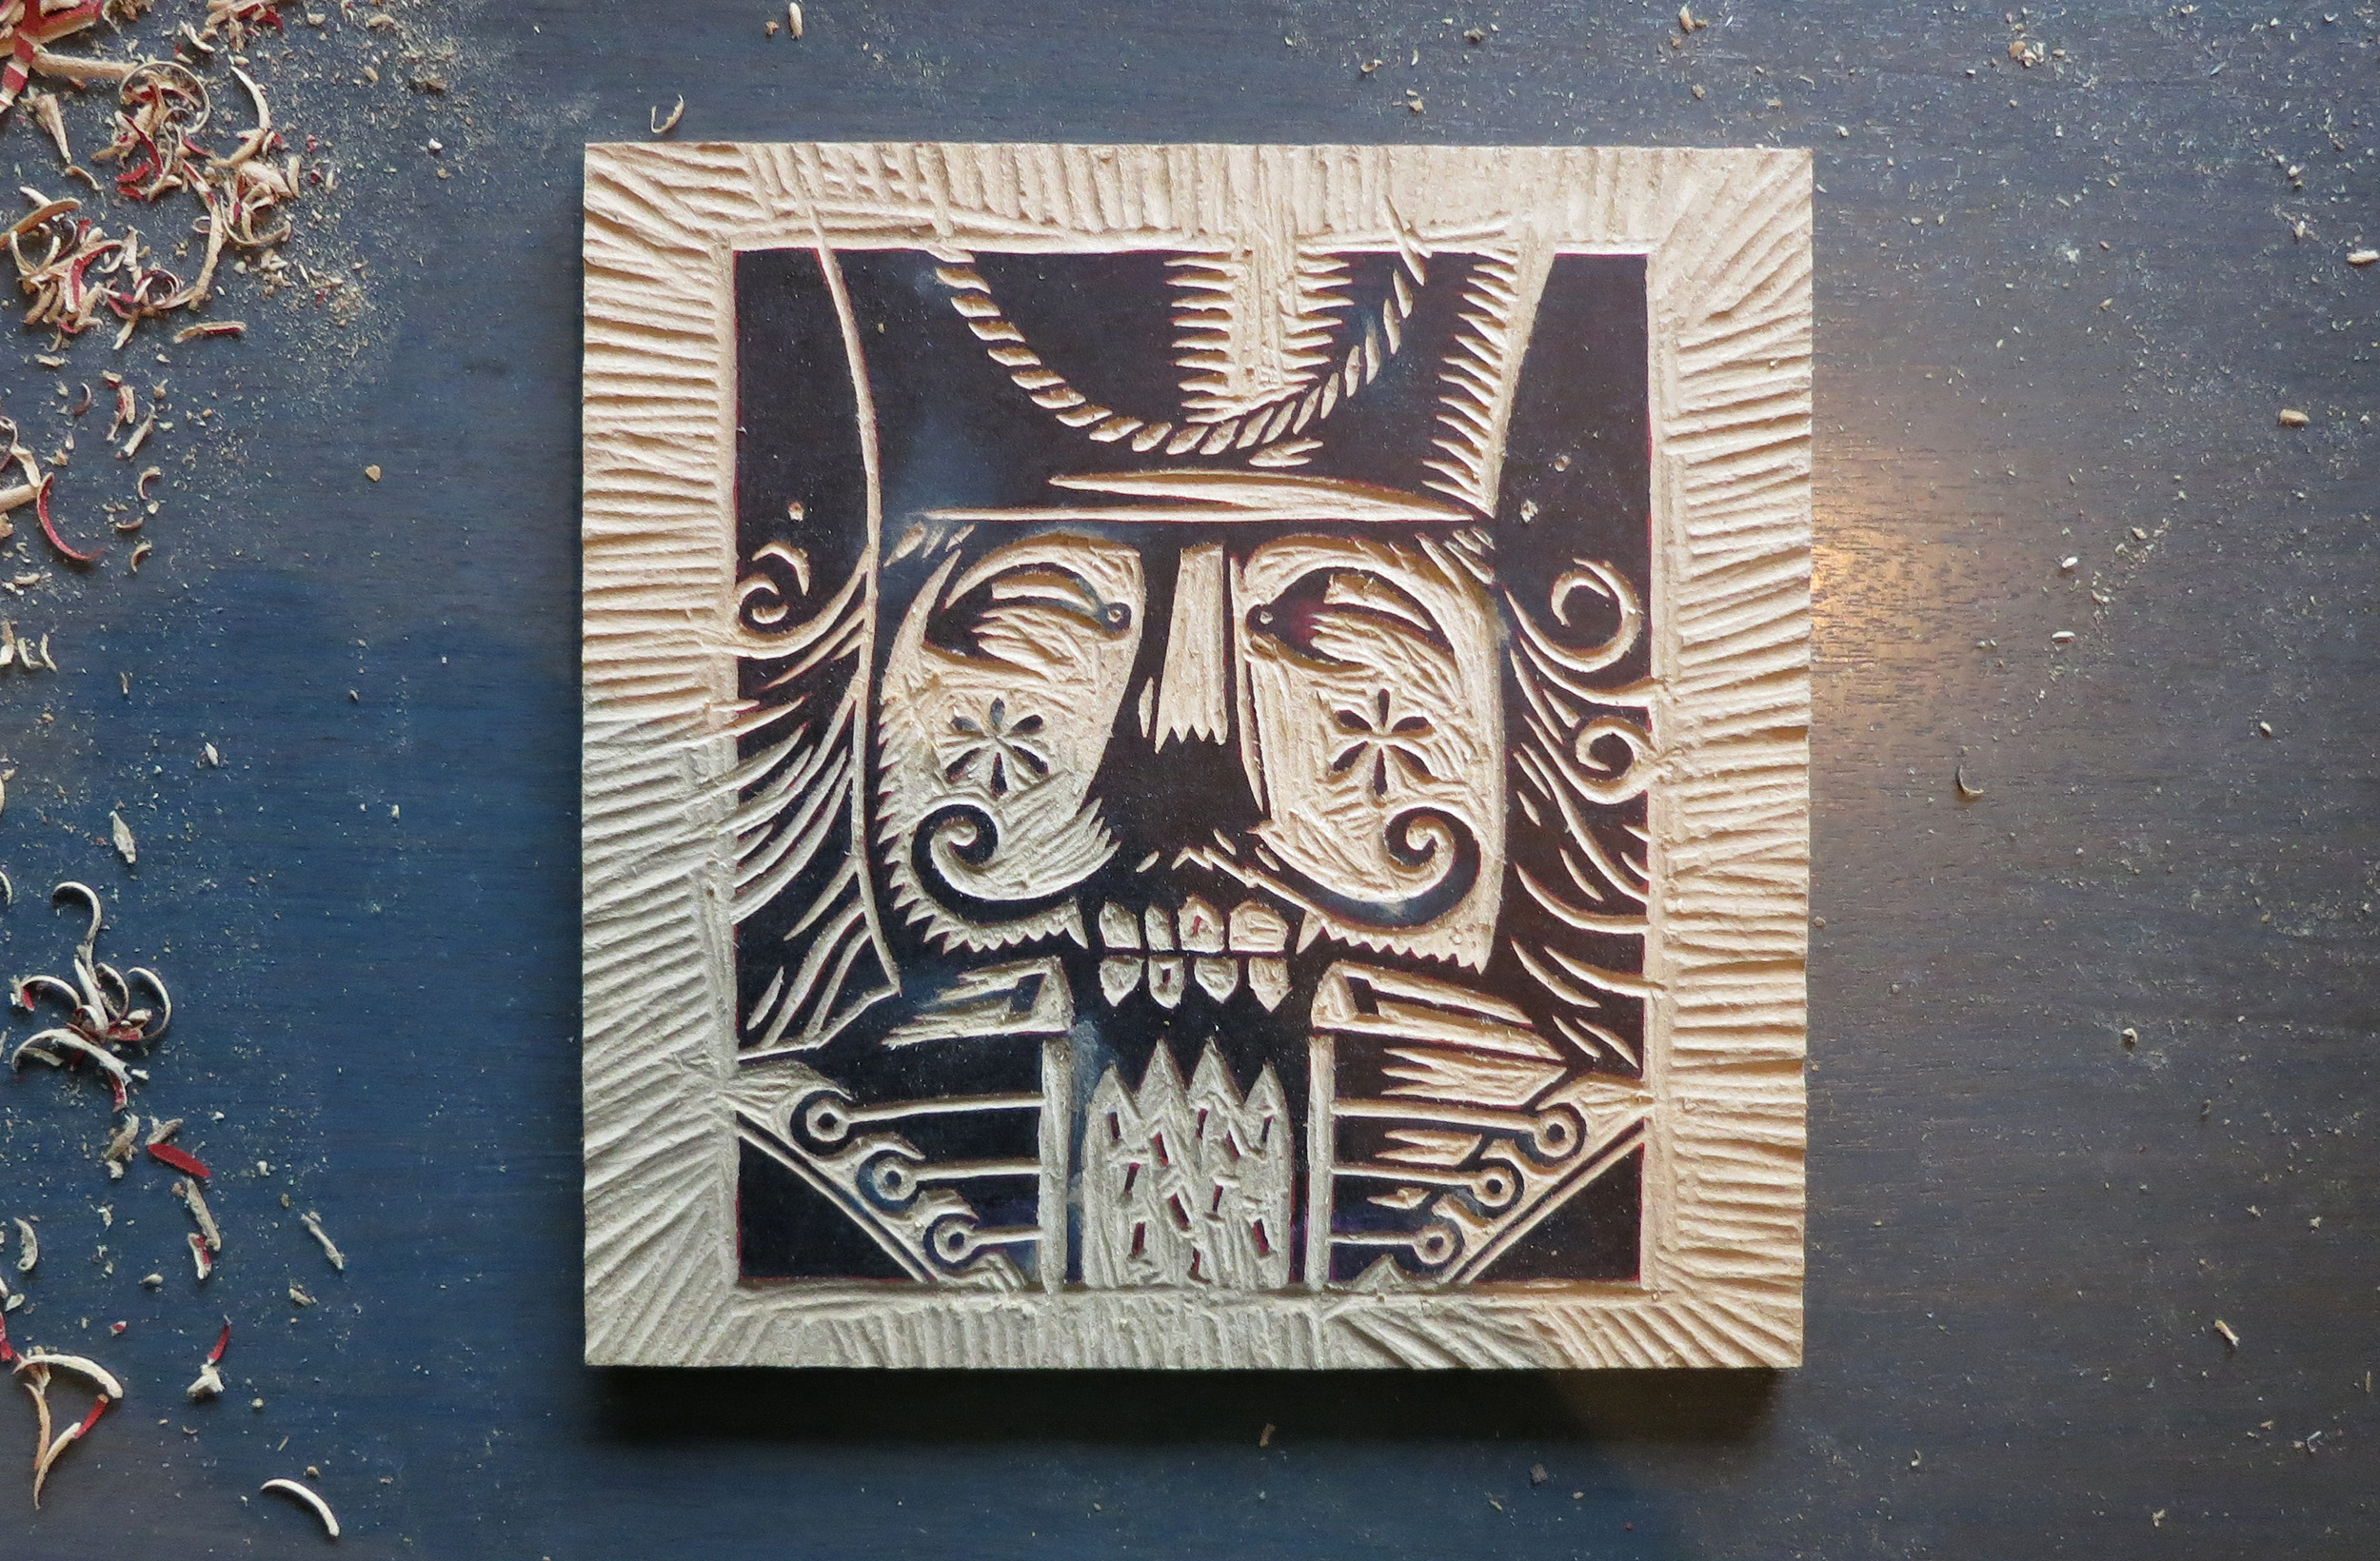 Nussknacker woodblock